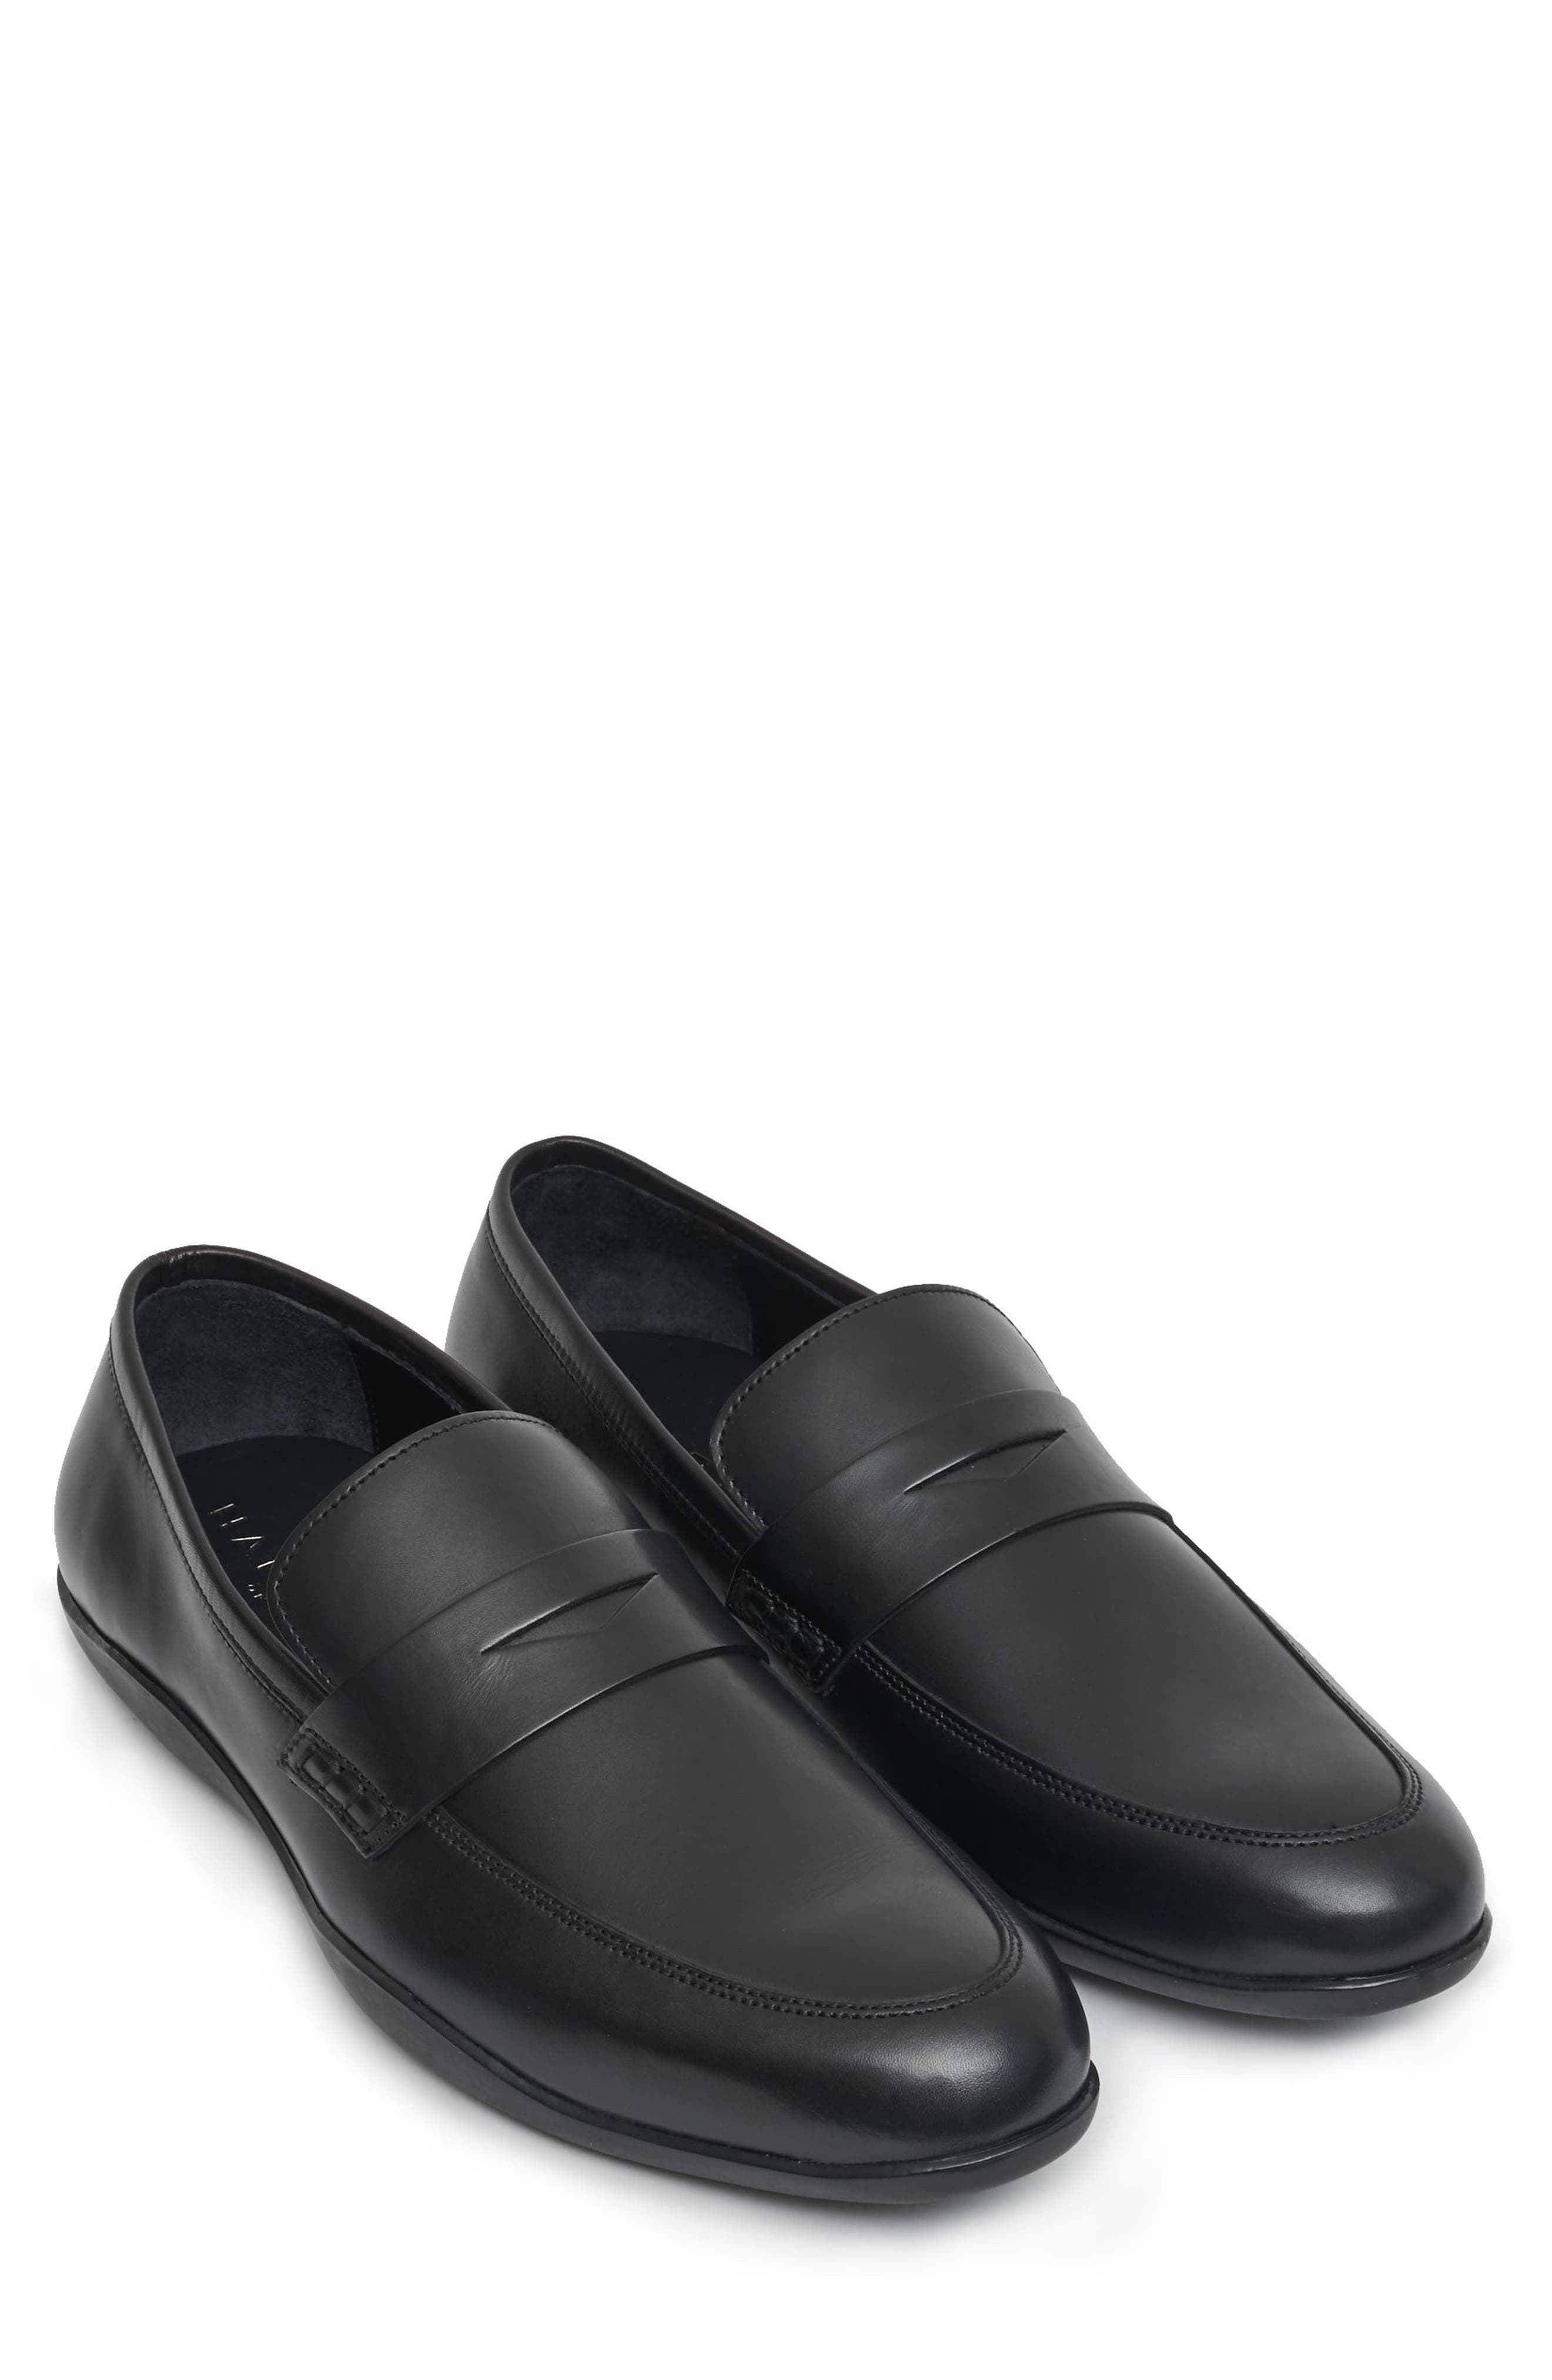 Downing Penny Loafer